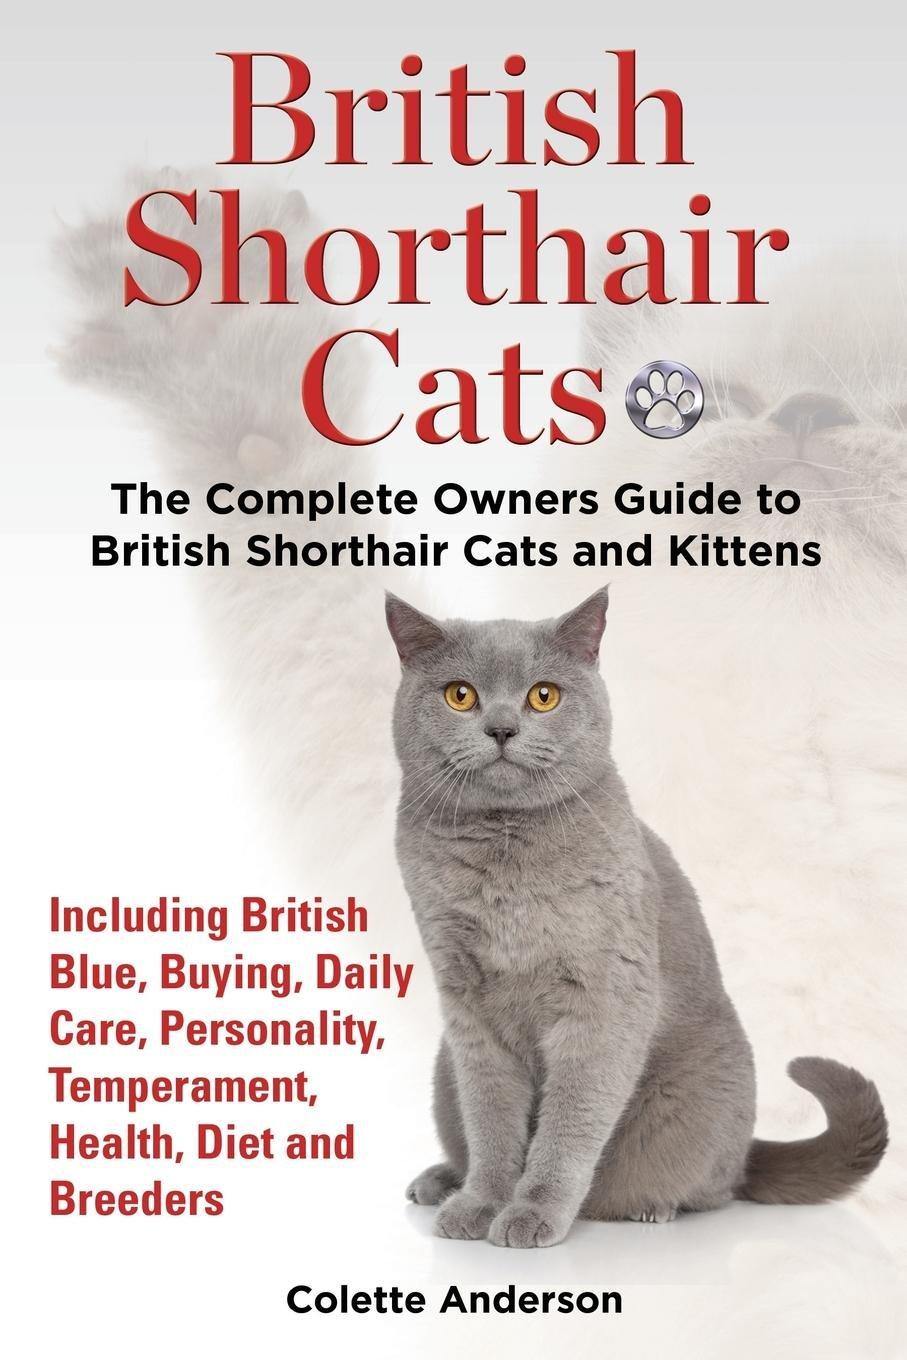 Download British Shorthair Cats, The Complete Owners Guide to British Shorthair Cats and Kittens  Including British Blue, Buying, Daily Care, Personality, Temperament, Health, Diet and Breeders pdf